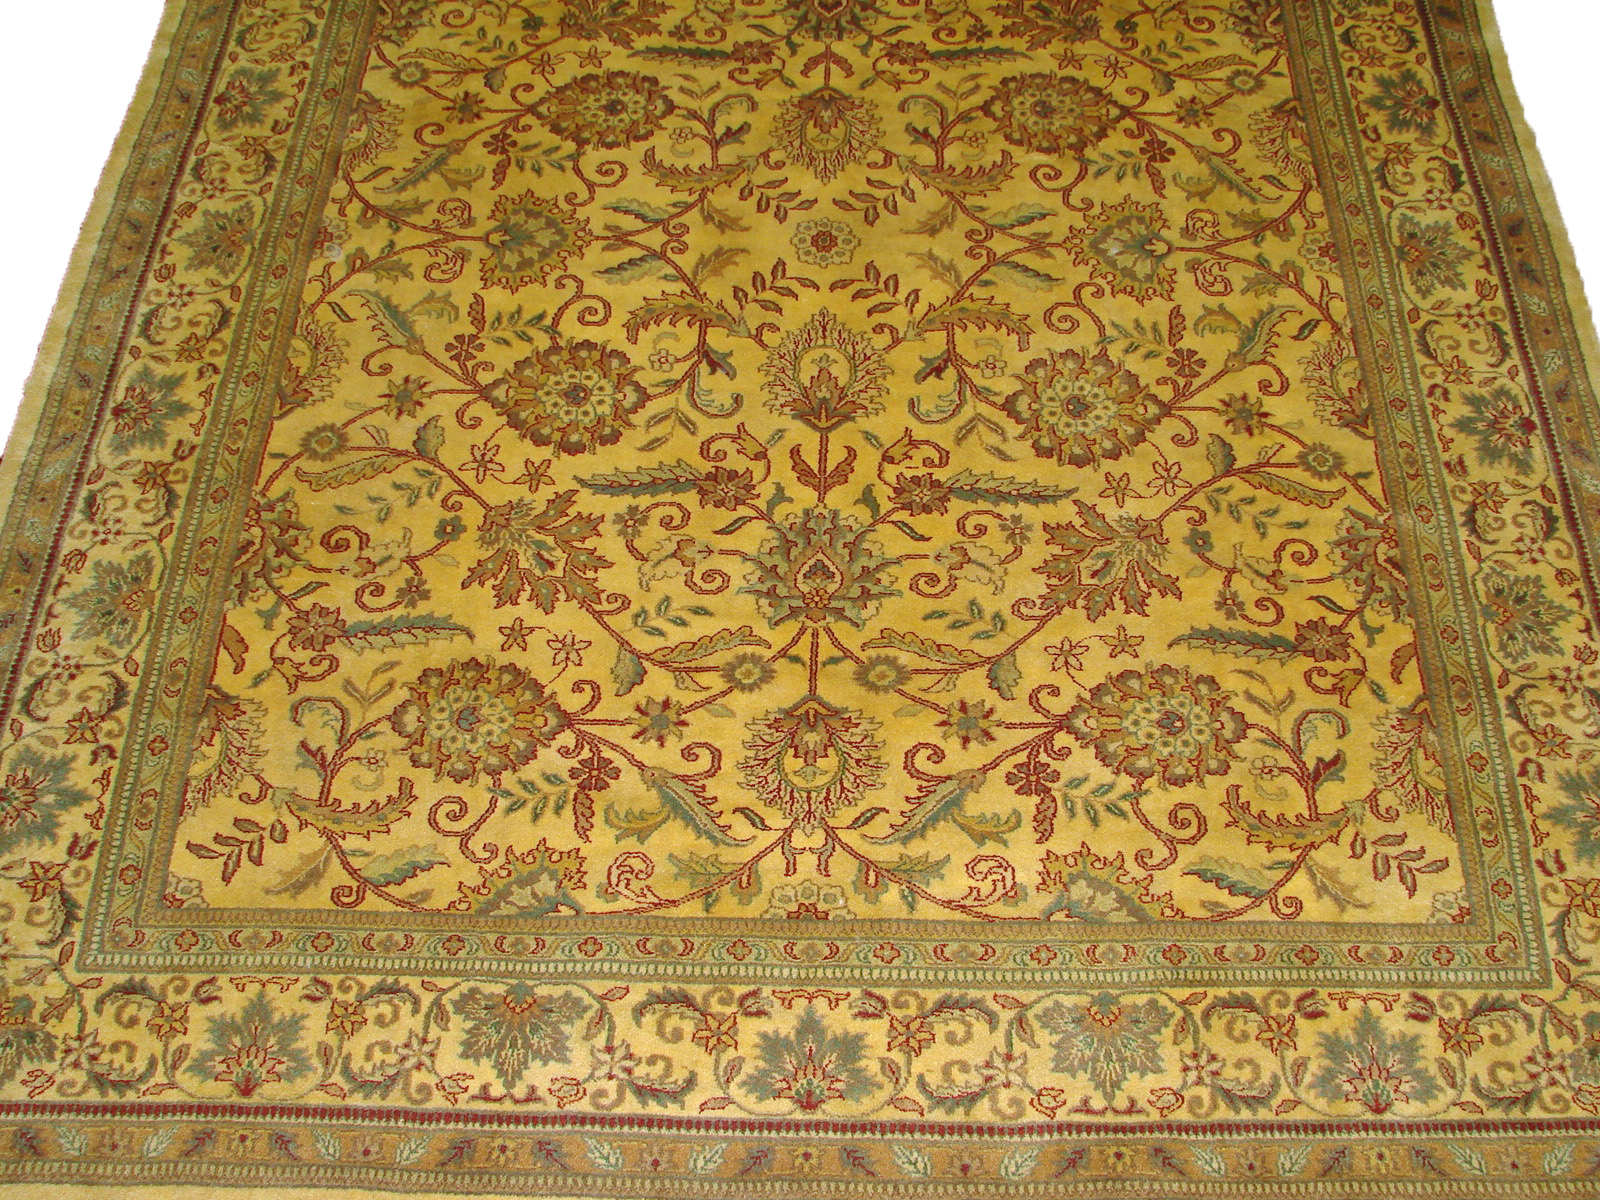 Clearance Rugs & Discontinued Rugs-NARAYAN B-Oriental Designer Rugs